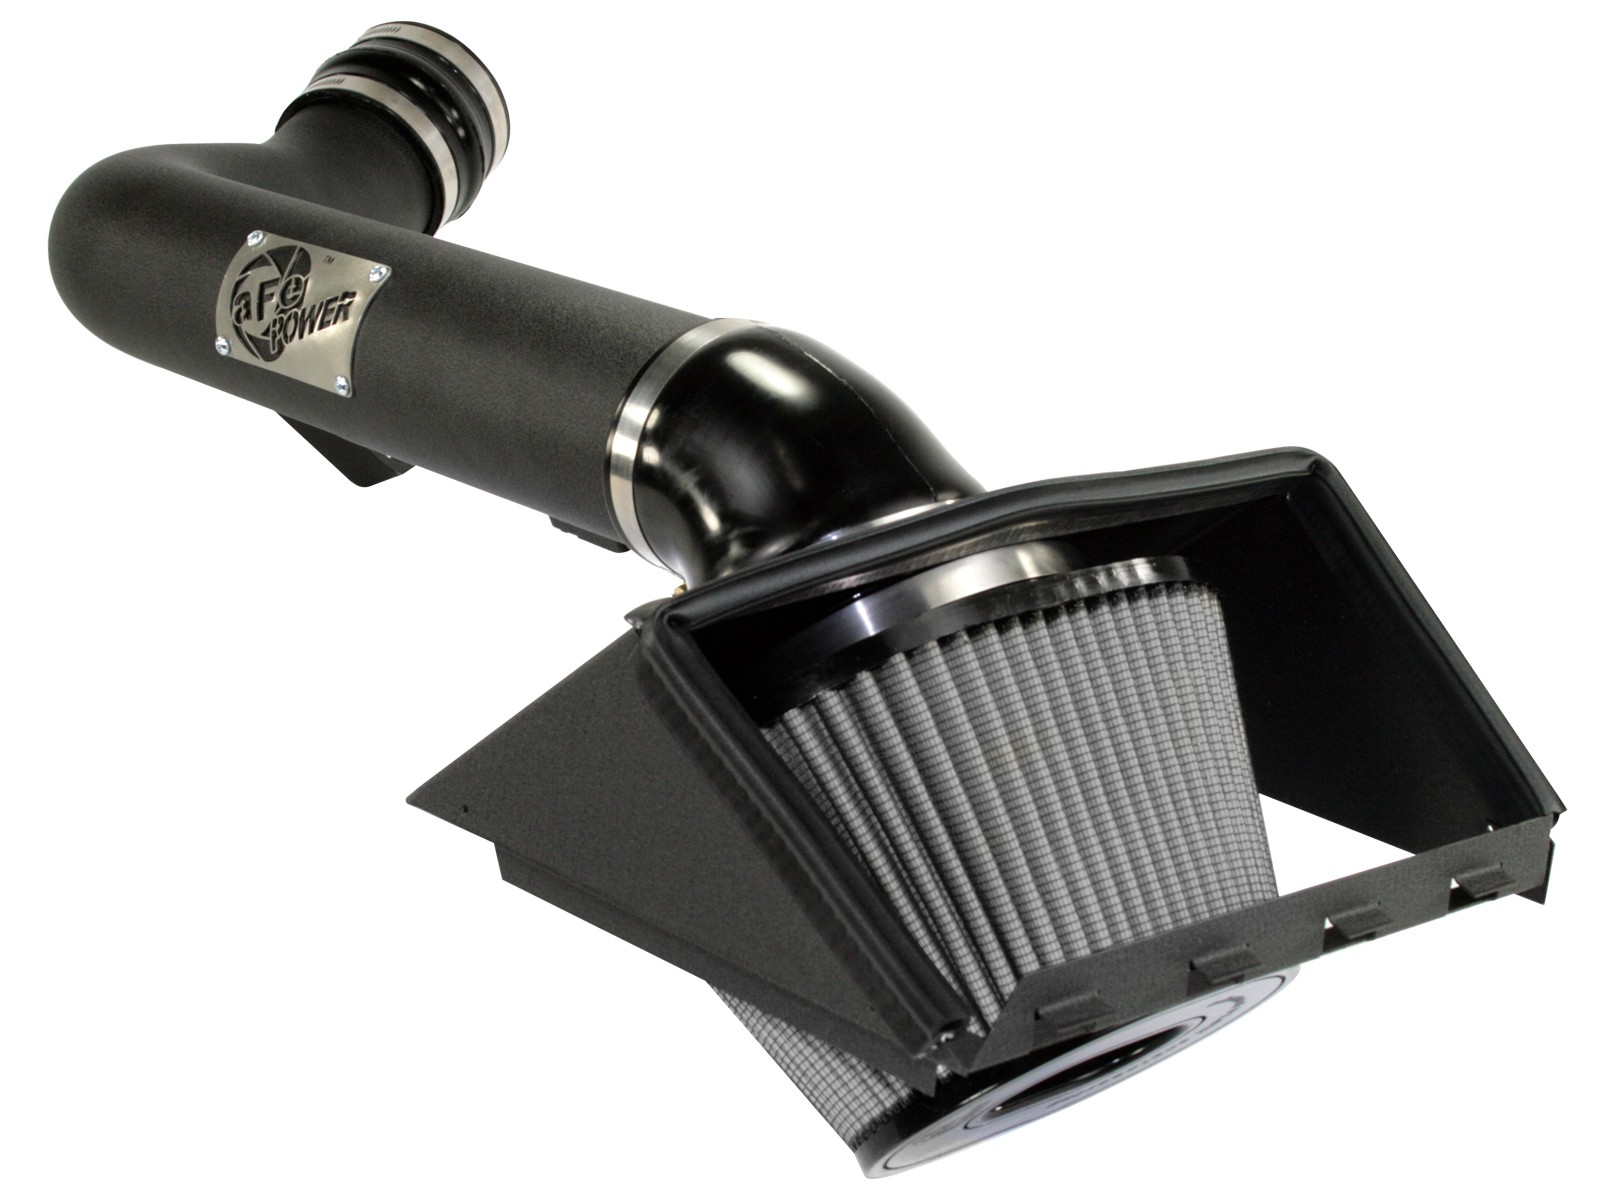 aFe Power 54-11902-1 Magnum Force Stage-2 Cold Air Intake System with Black Tube and Pro 5R Air Filter for Ford F-150 V8-6.2L